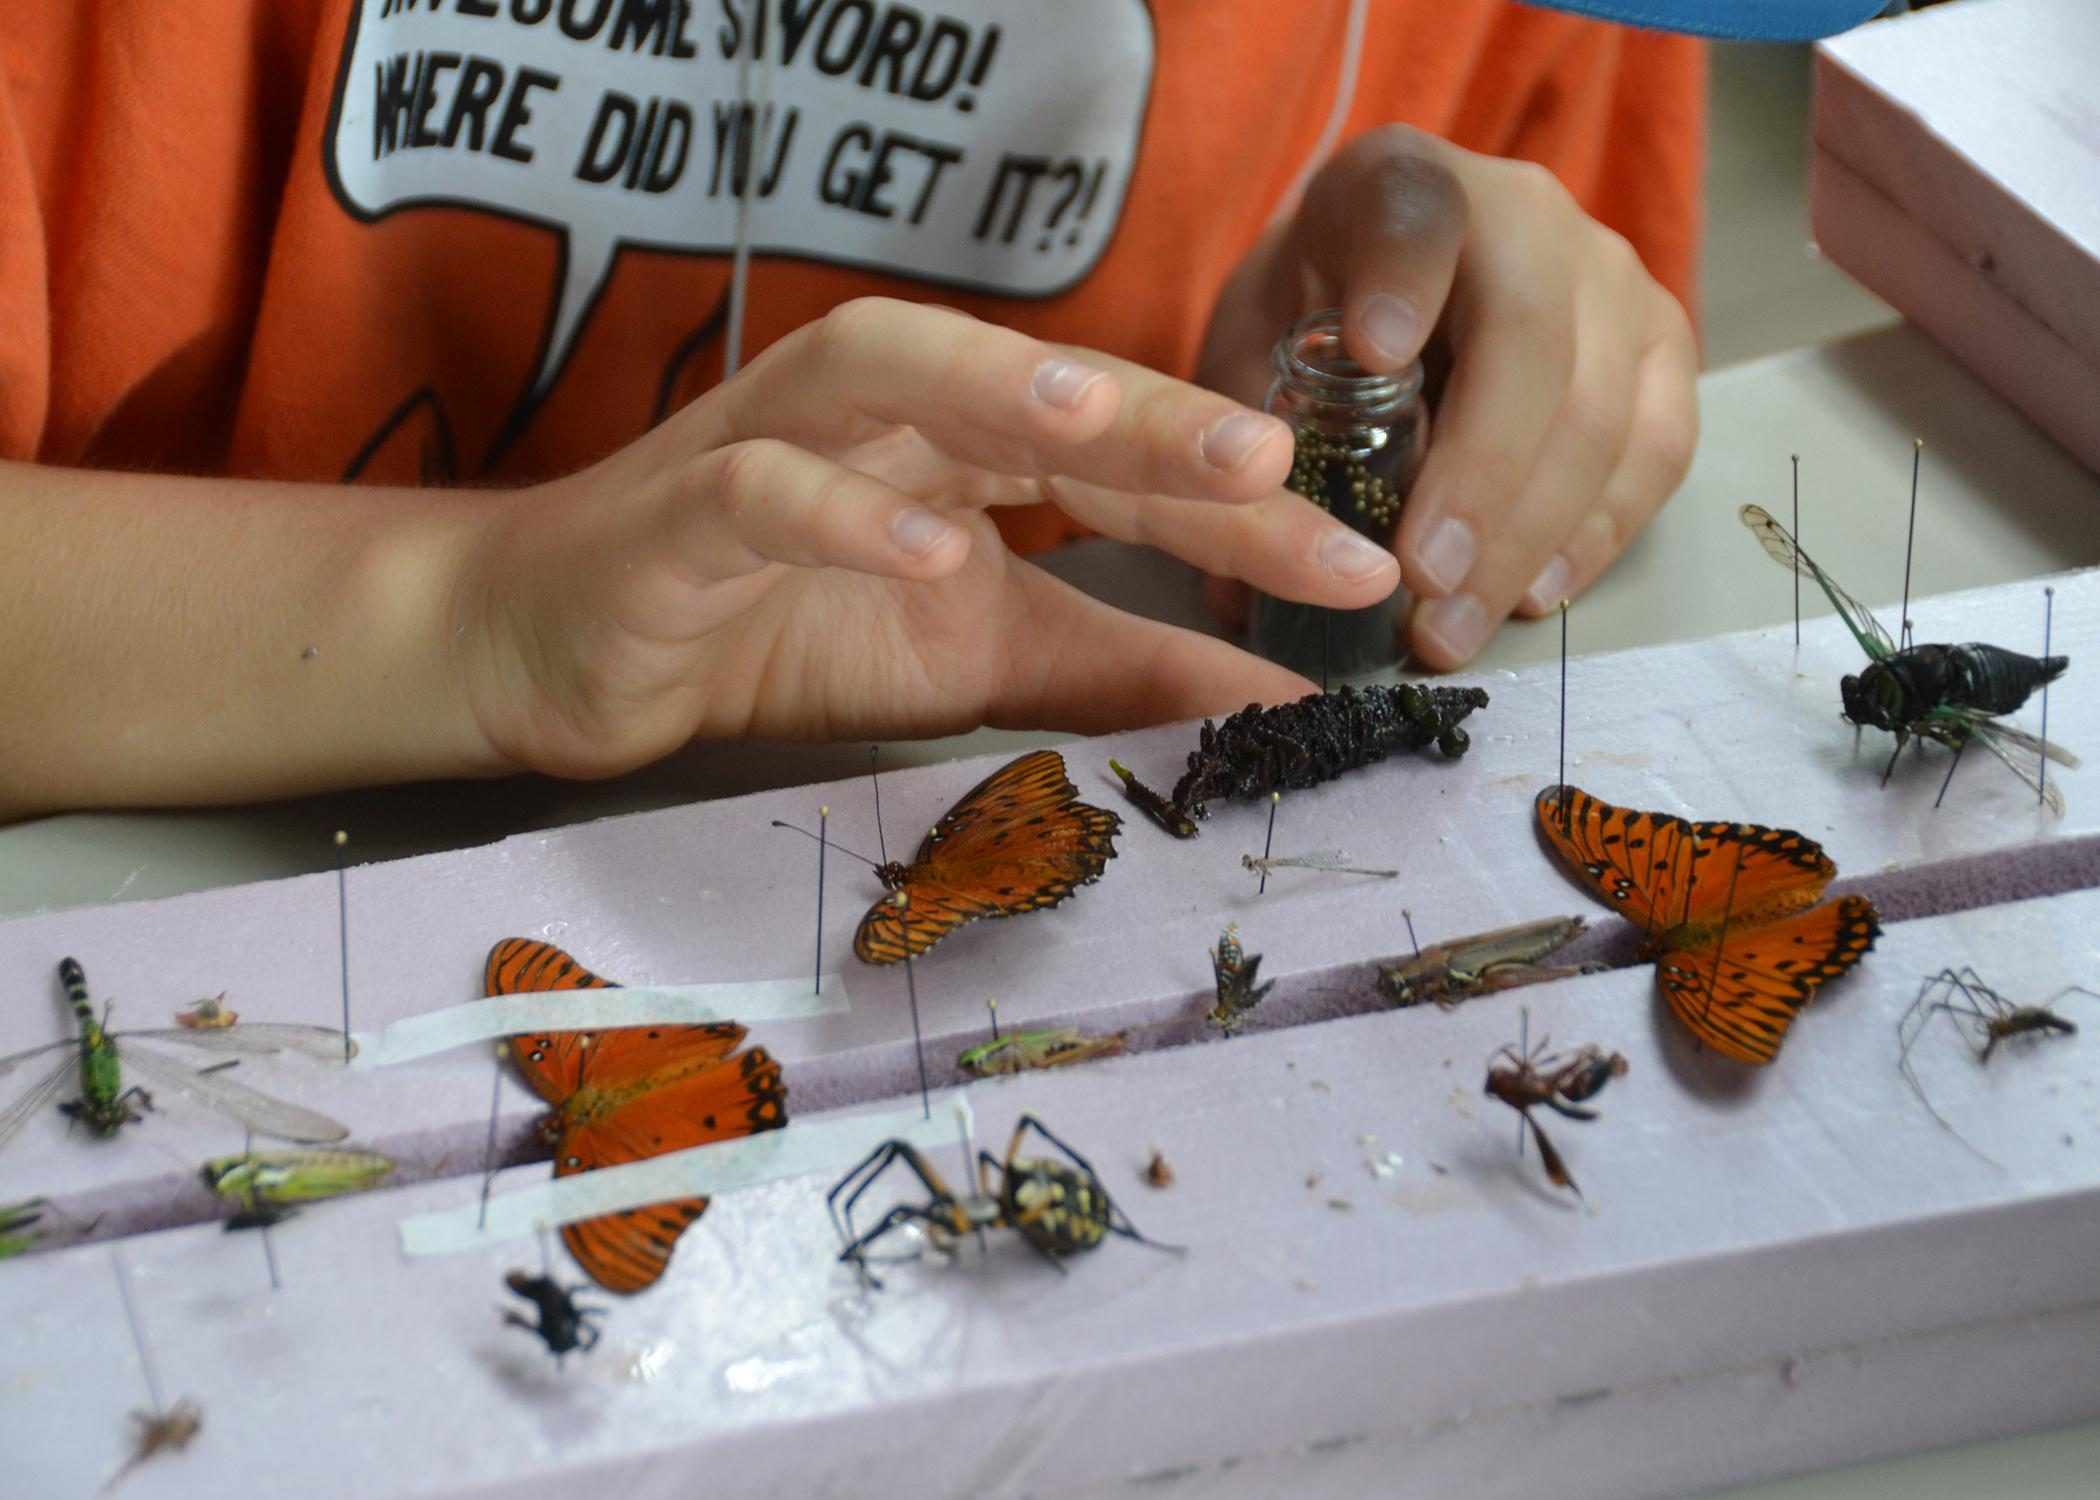 A closeup of an insect being applied to a display board.